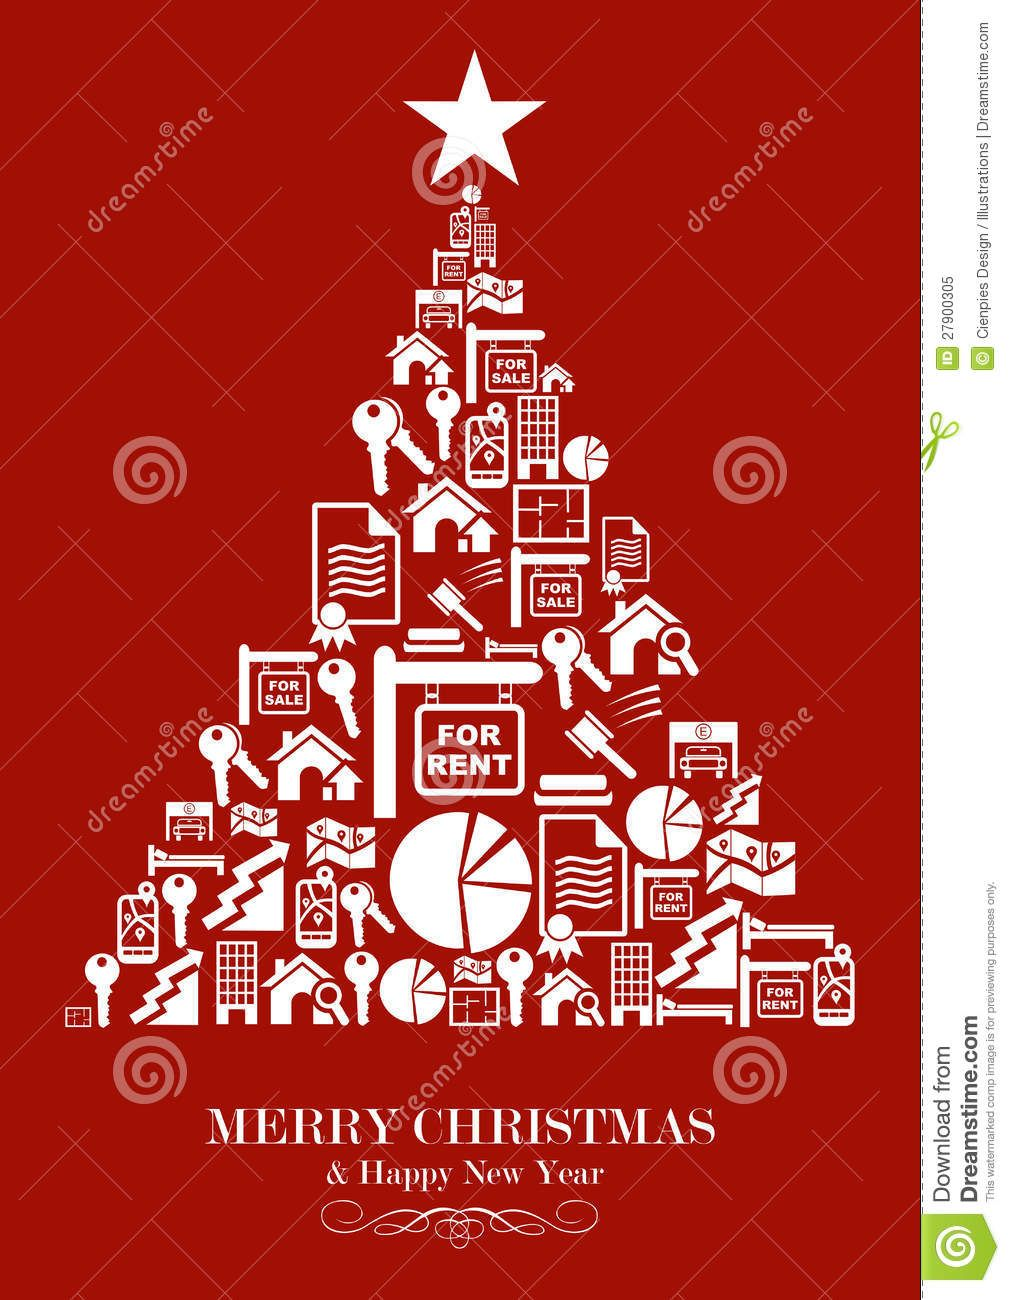 Real estate industry christmas tree download from over 49 real estate industry christmas tree download from over 49 million high quality stock photos kristyandbryce Images